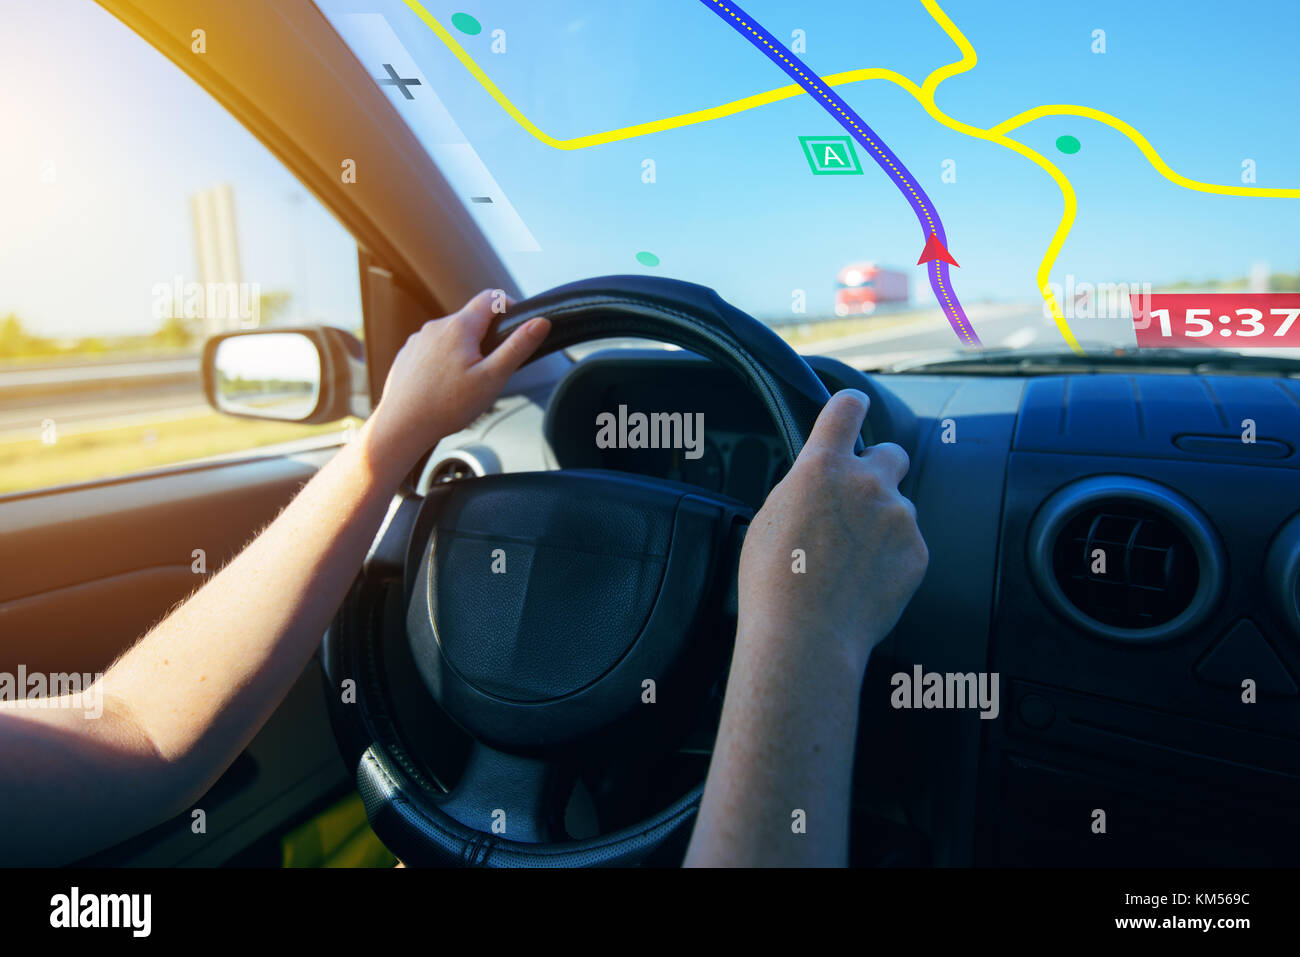 GPS (Global Positioning System) car navigation, help and assistance with direction on road - Stock Image